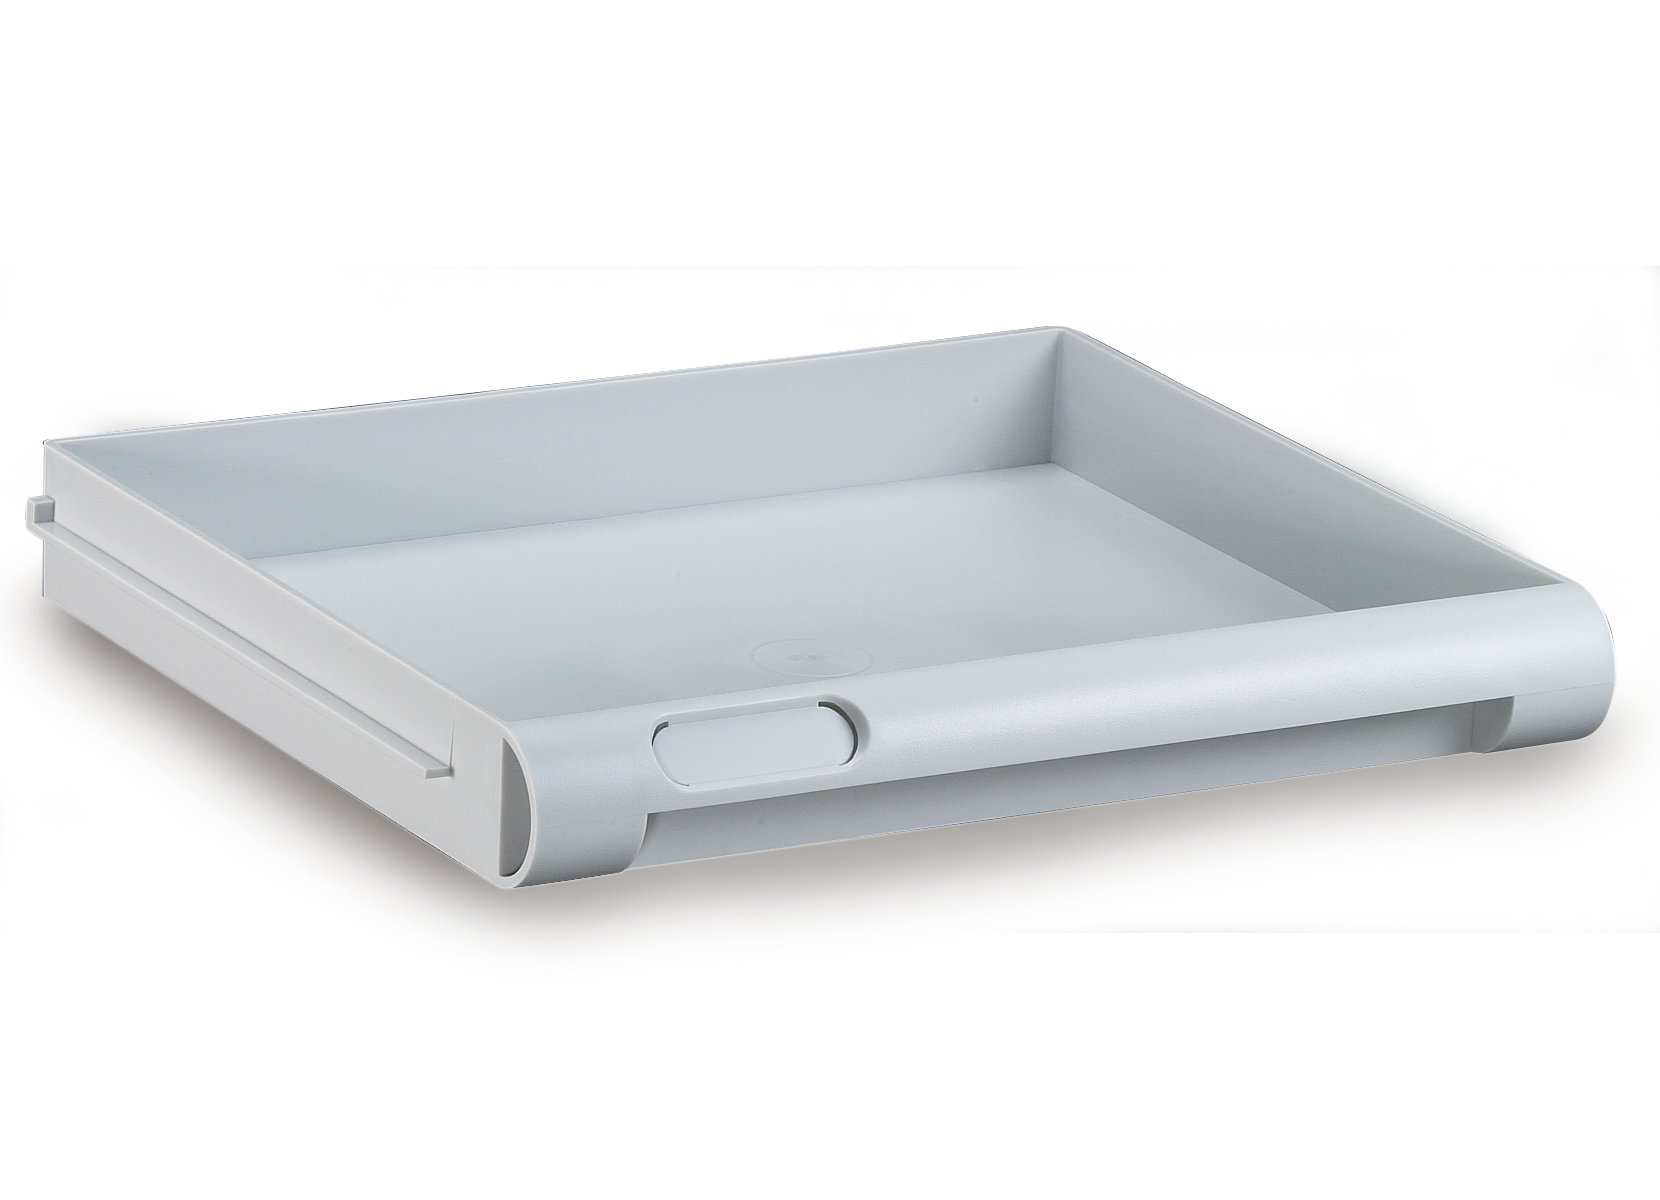 SentrySafe 912 Tray Accessory, for SFW082 and SFW123 Fire Safes